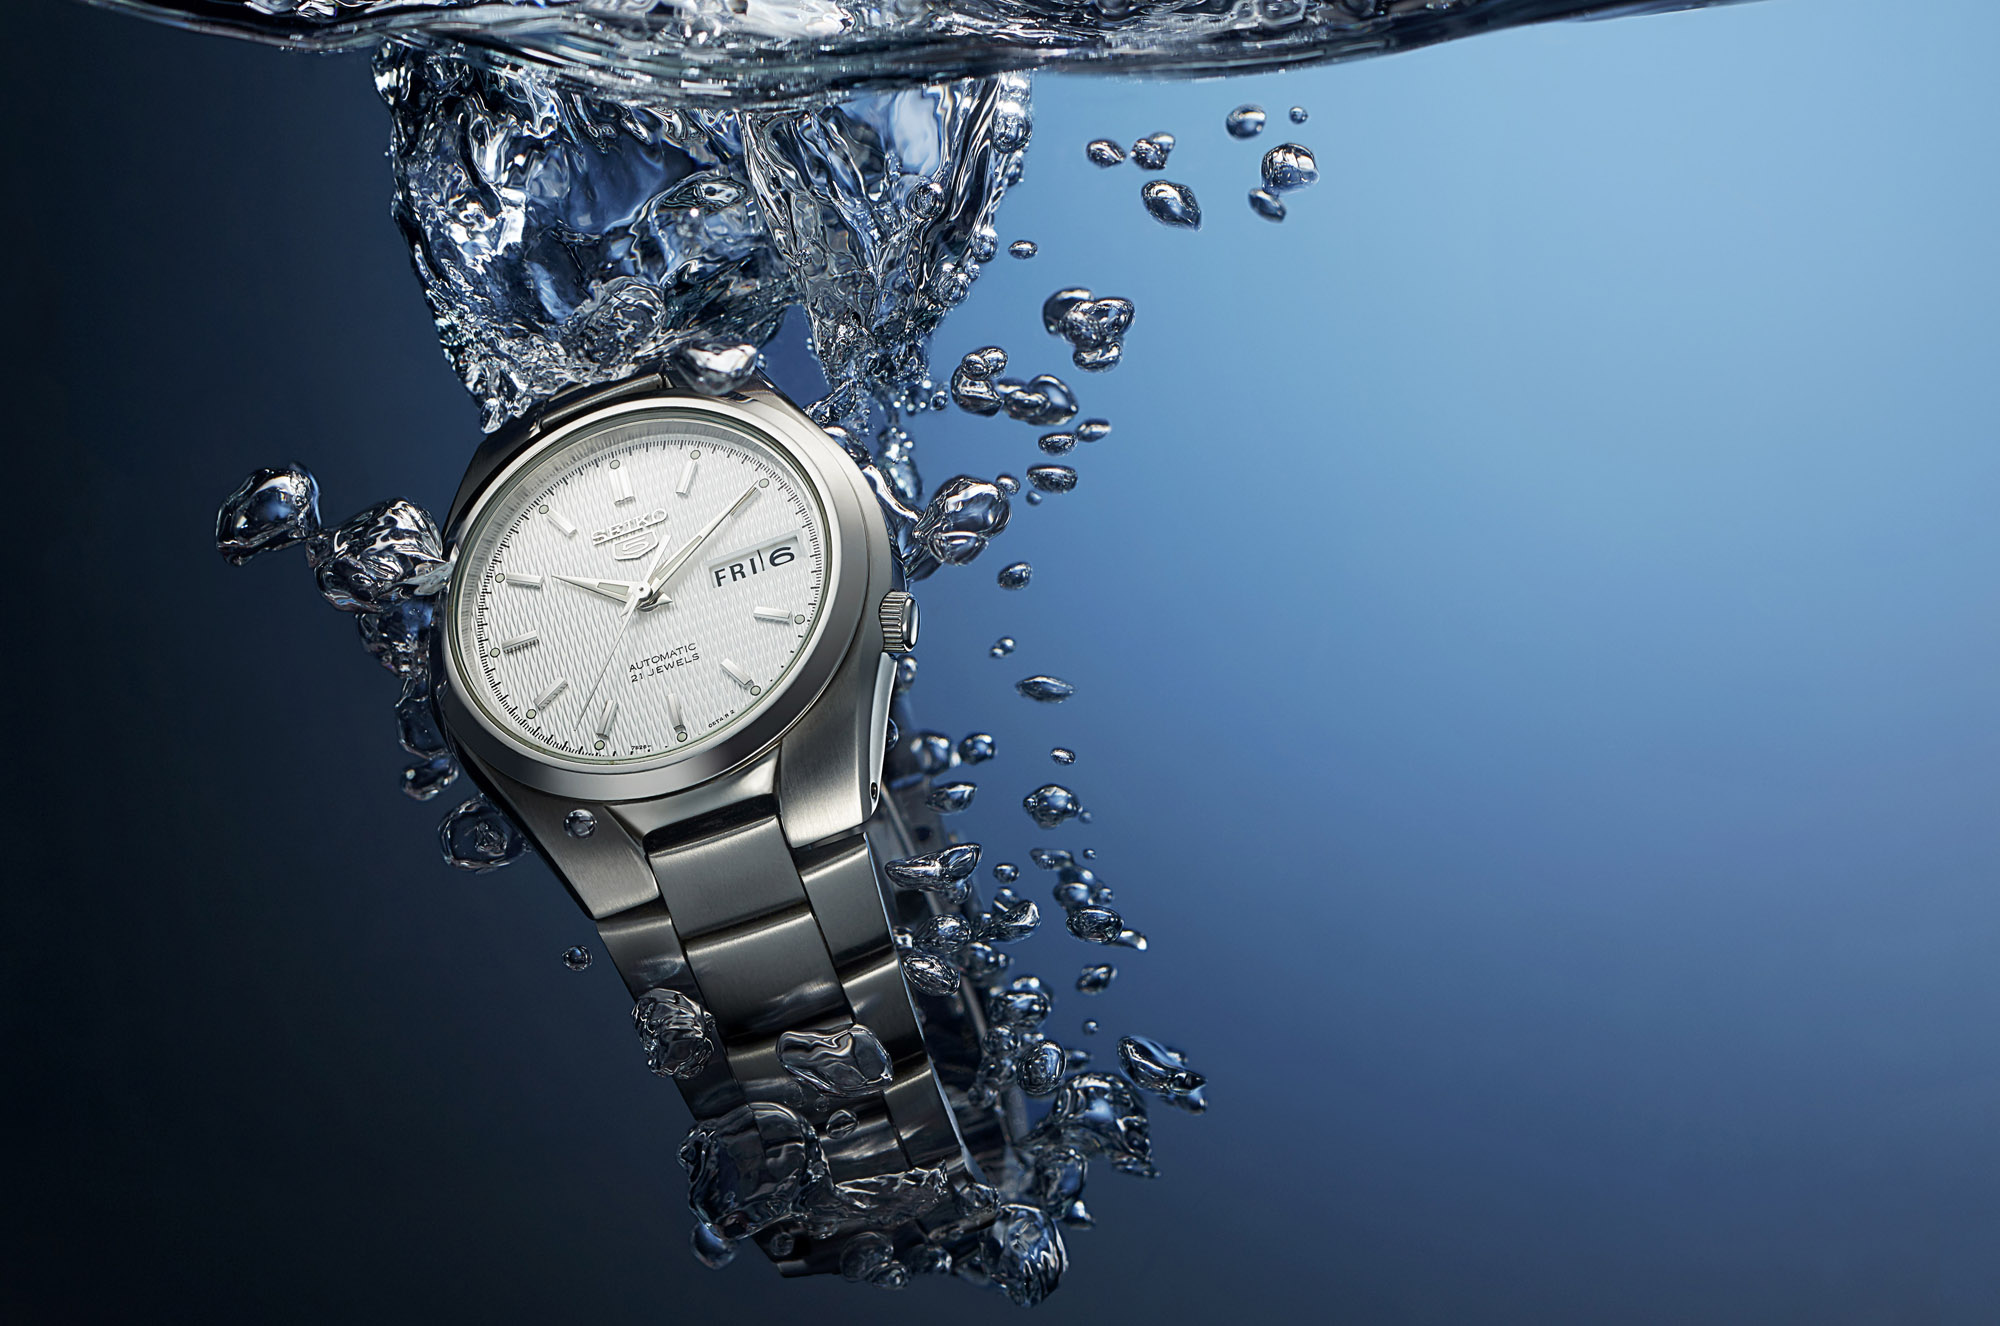 02 Water watch001.jpg